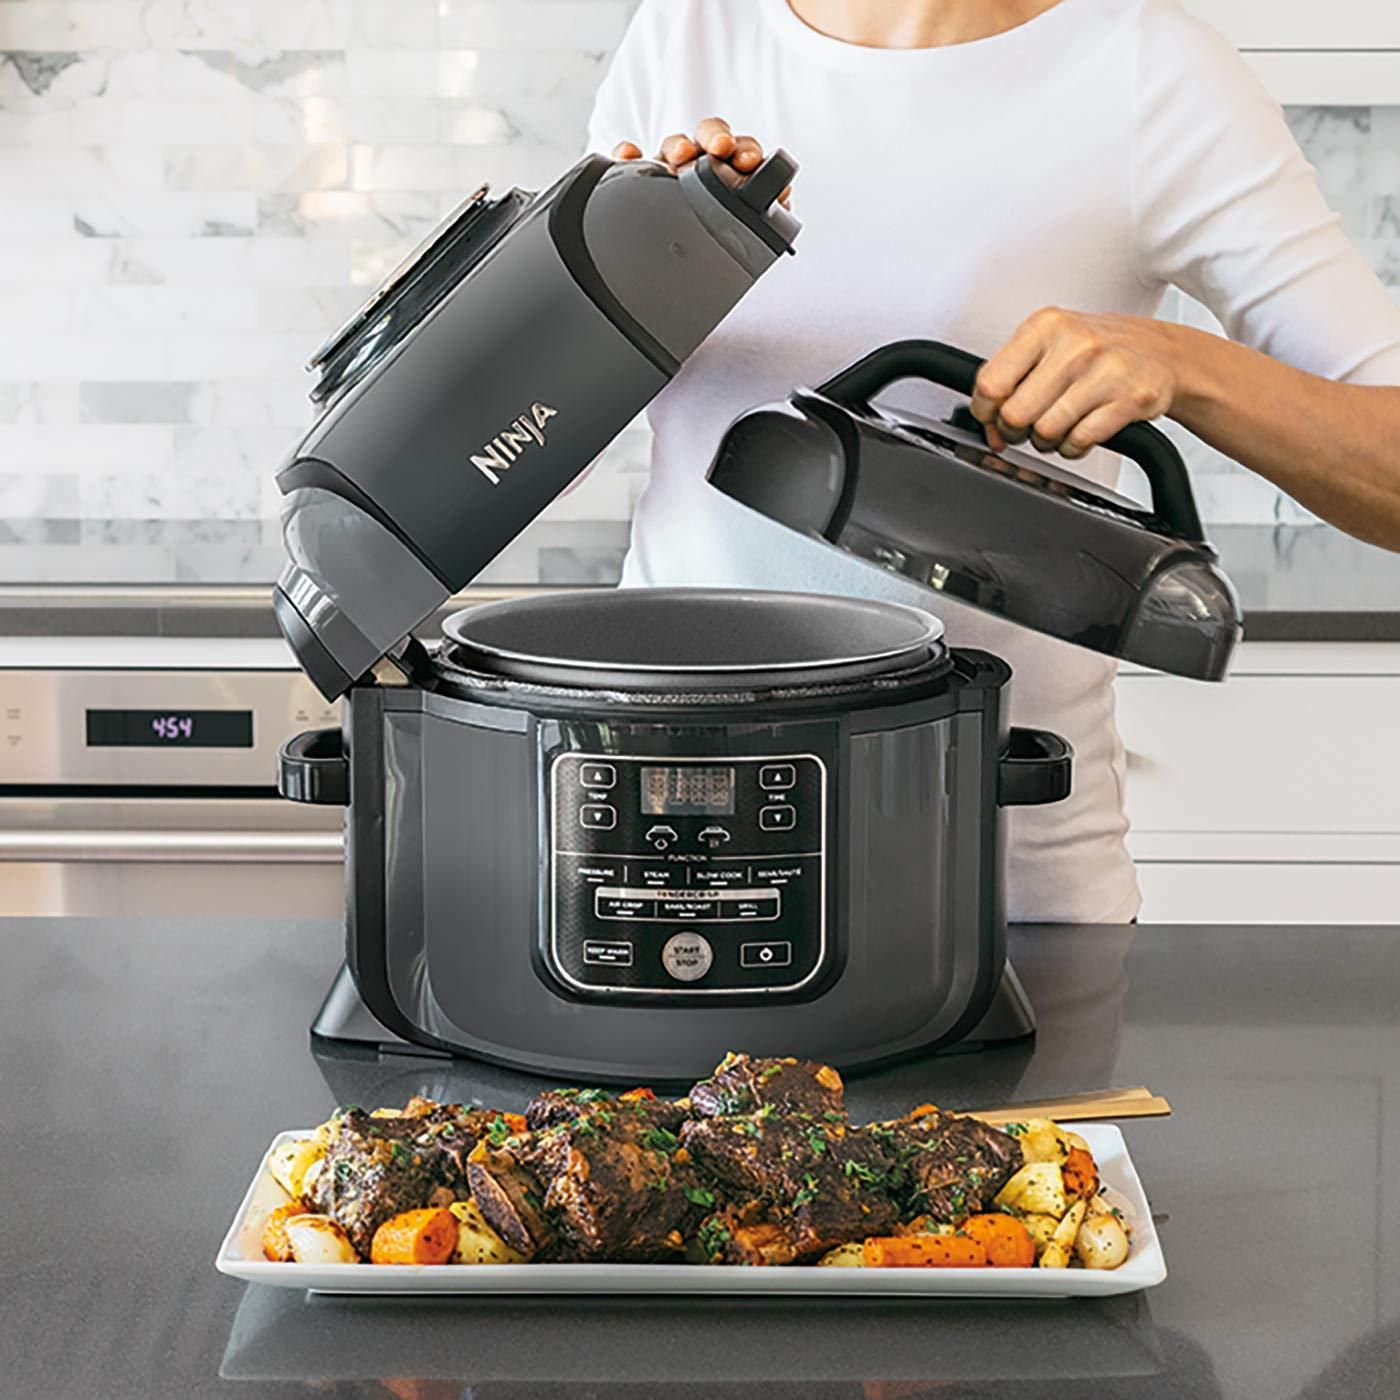 The Pressure Cooker That Crisps Tender Crisp Technology Pressure Cook To Lock In Juices Then Crisp To Perfection Multiple Multicooker Cooker Pressure Cooking